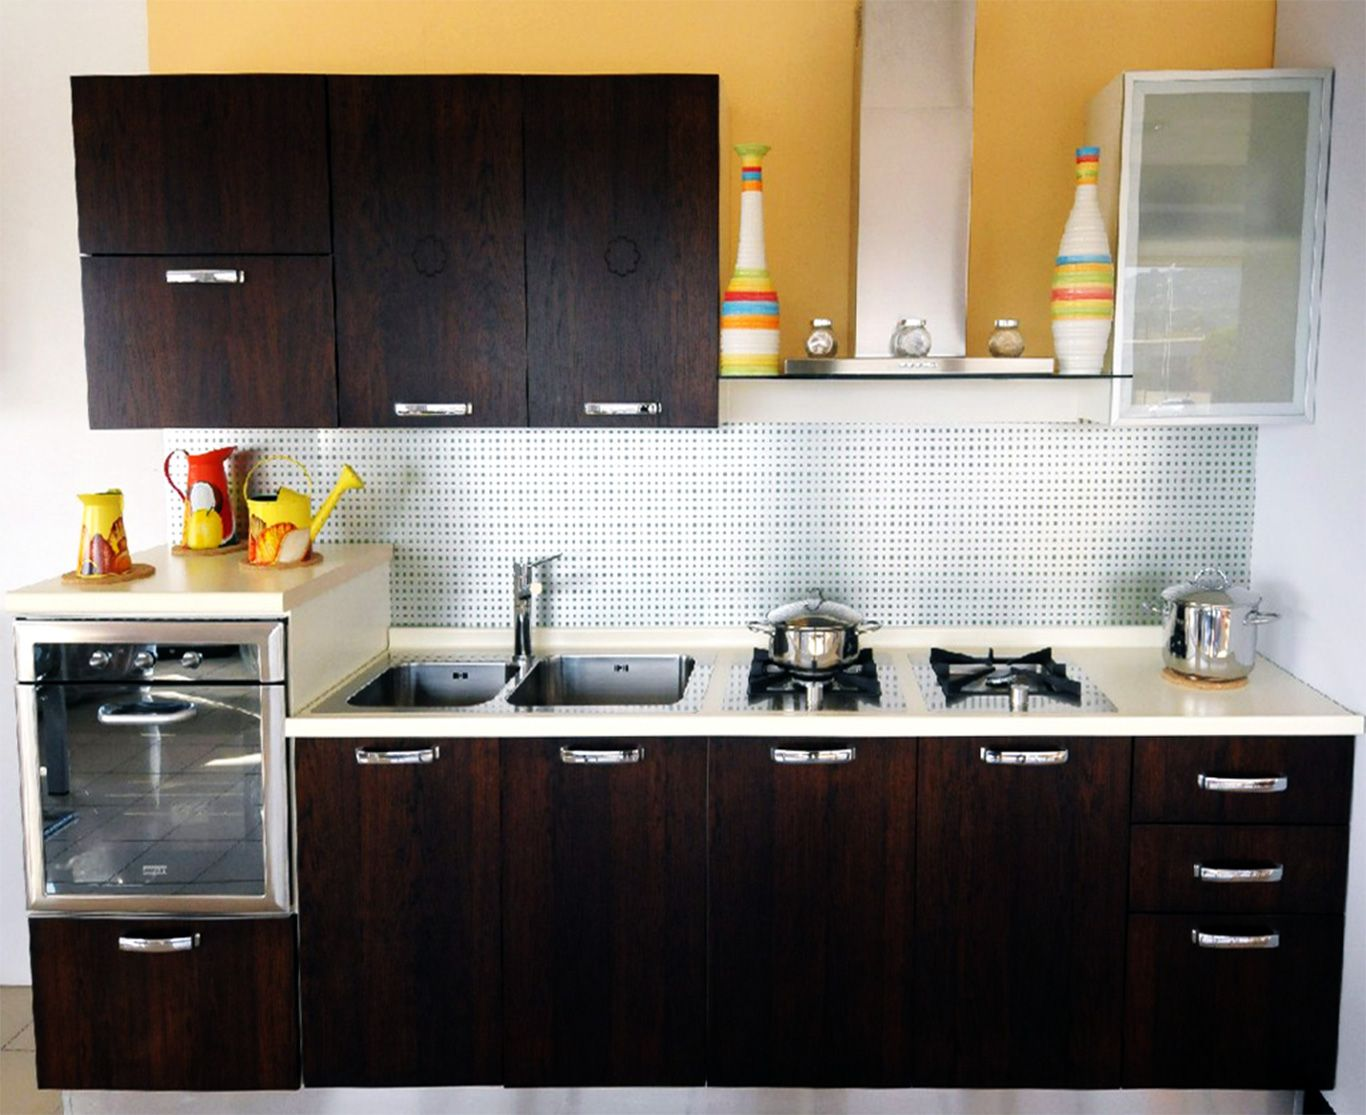 pune kitchens is the modular kitchen shutters supplier